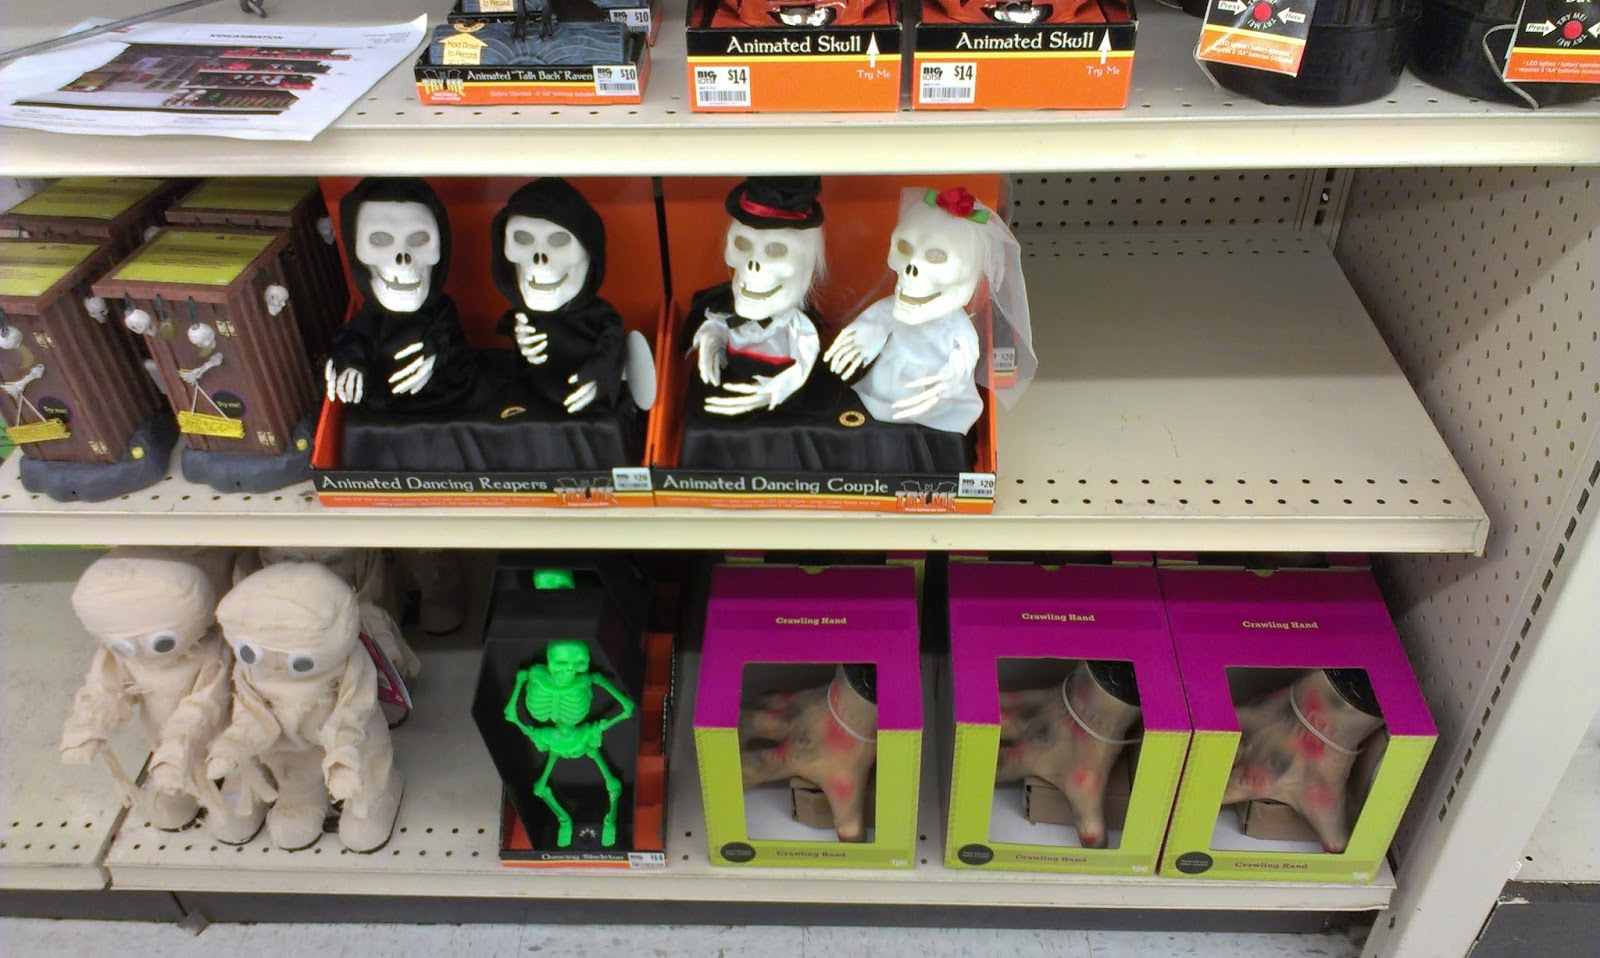 See Some The Stores New 2013 Halloween Products While They Were Still Busy Getting Everything Out Seemed To Have A Majority Of It On Shelves